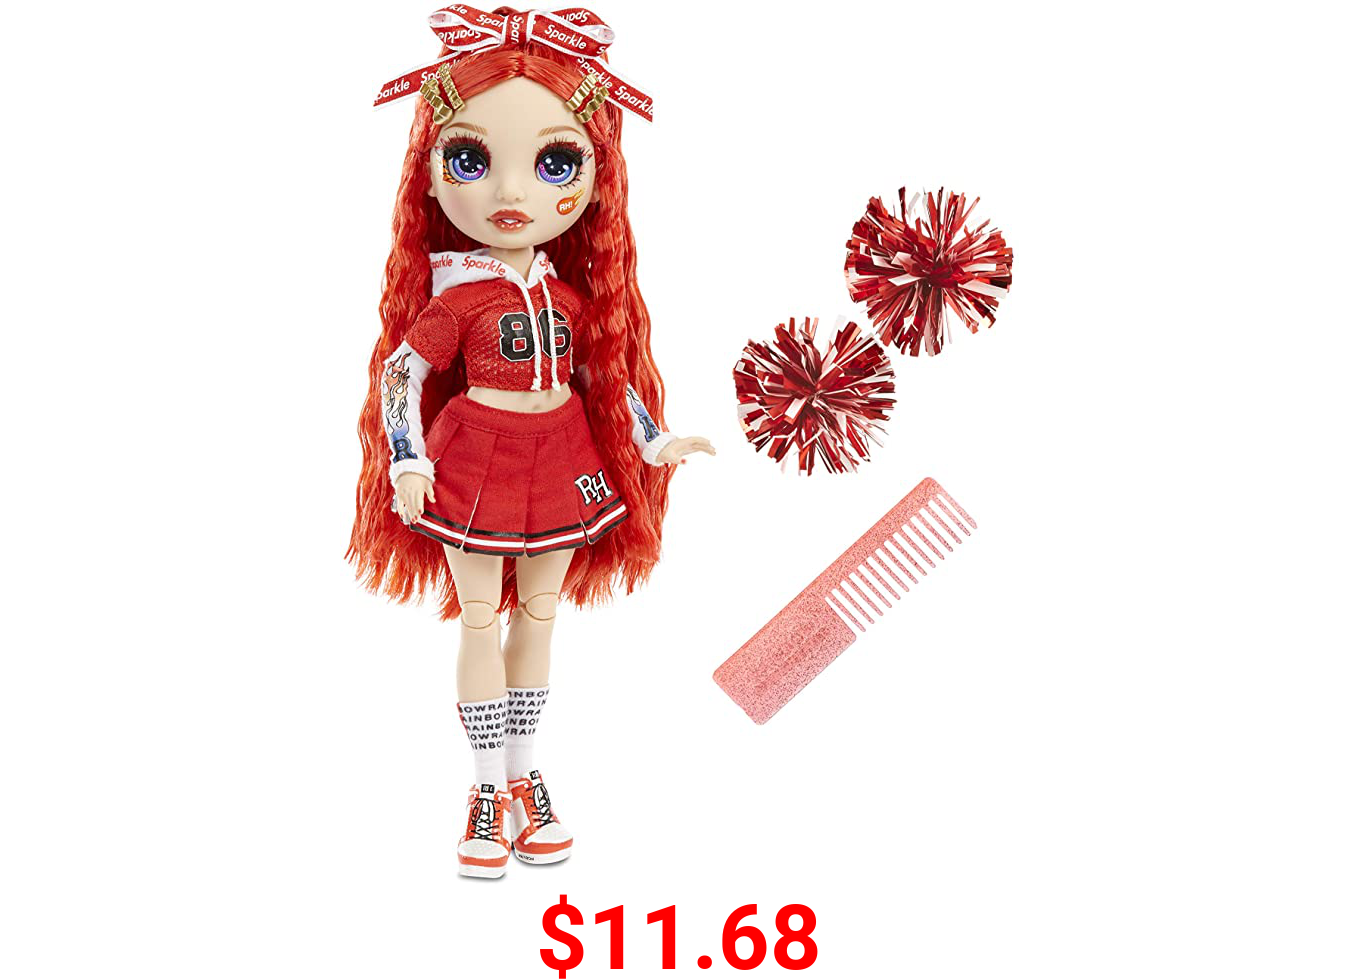 Rainbow High Cheer Ruby Anderson – Red Cheerleader Fashion Doll with 2 Pom Poms and Doll Accessories, Great Gift for Kids 6-12 Years Old